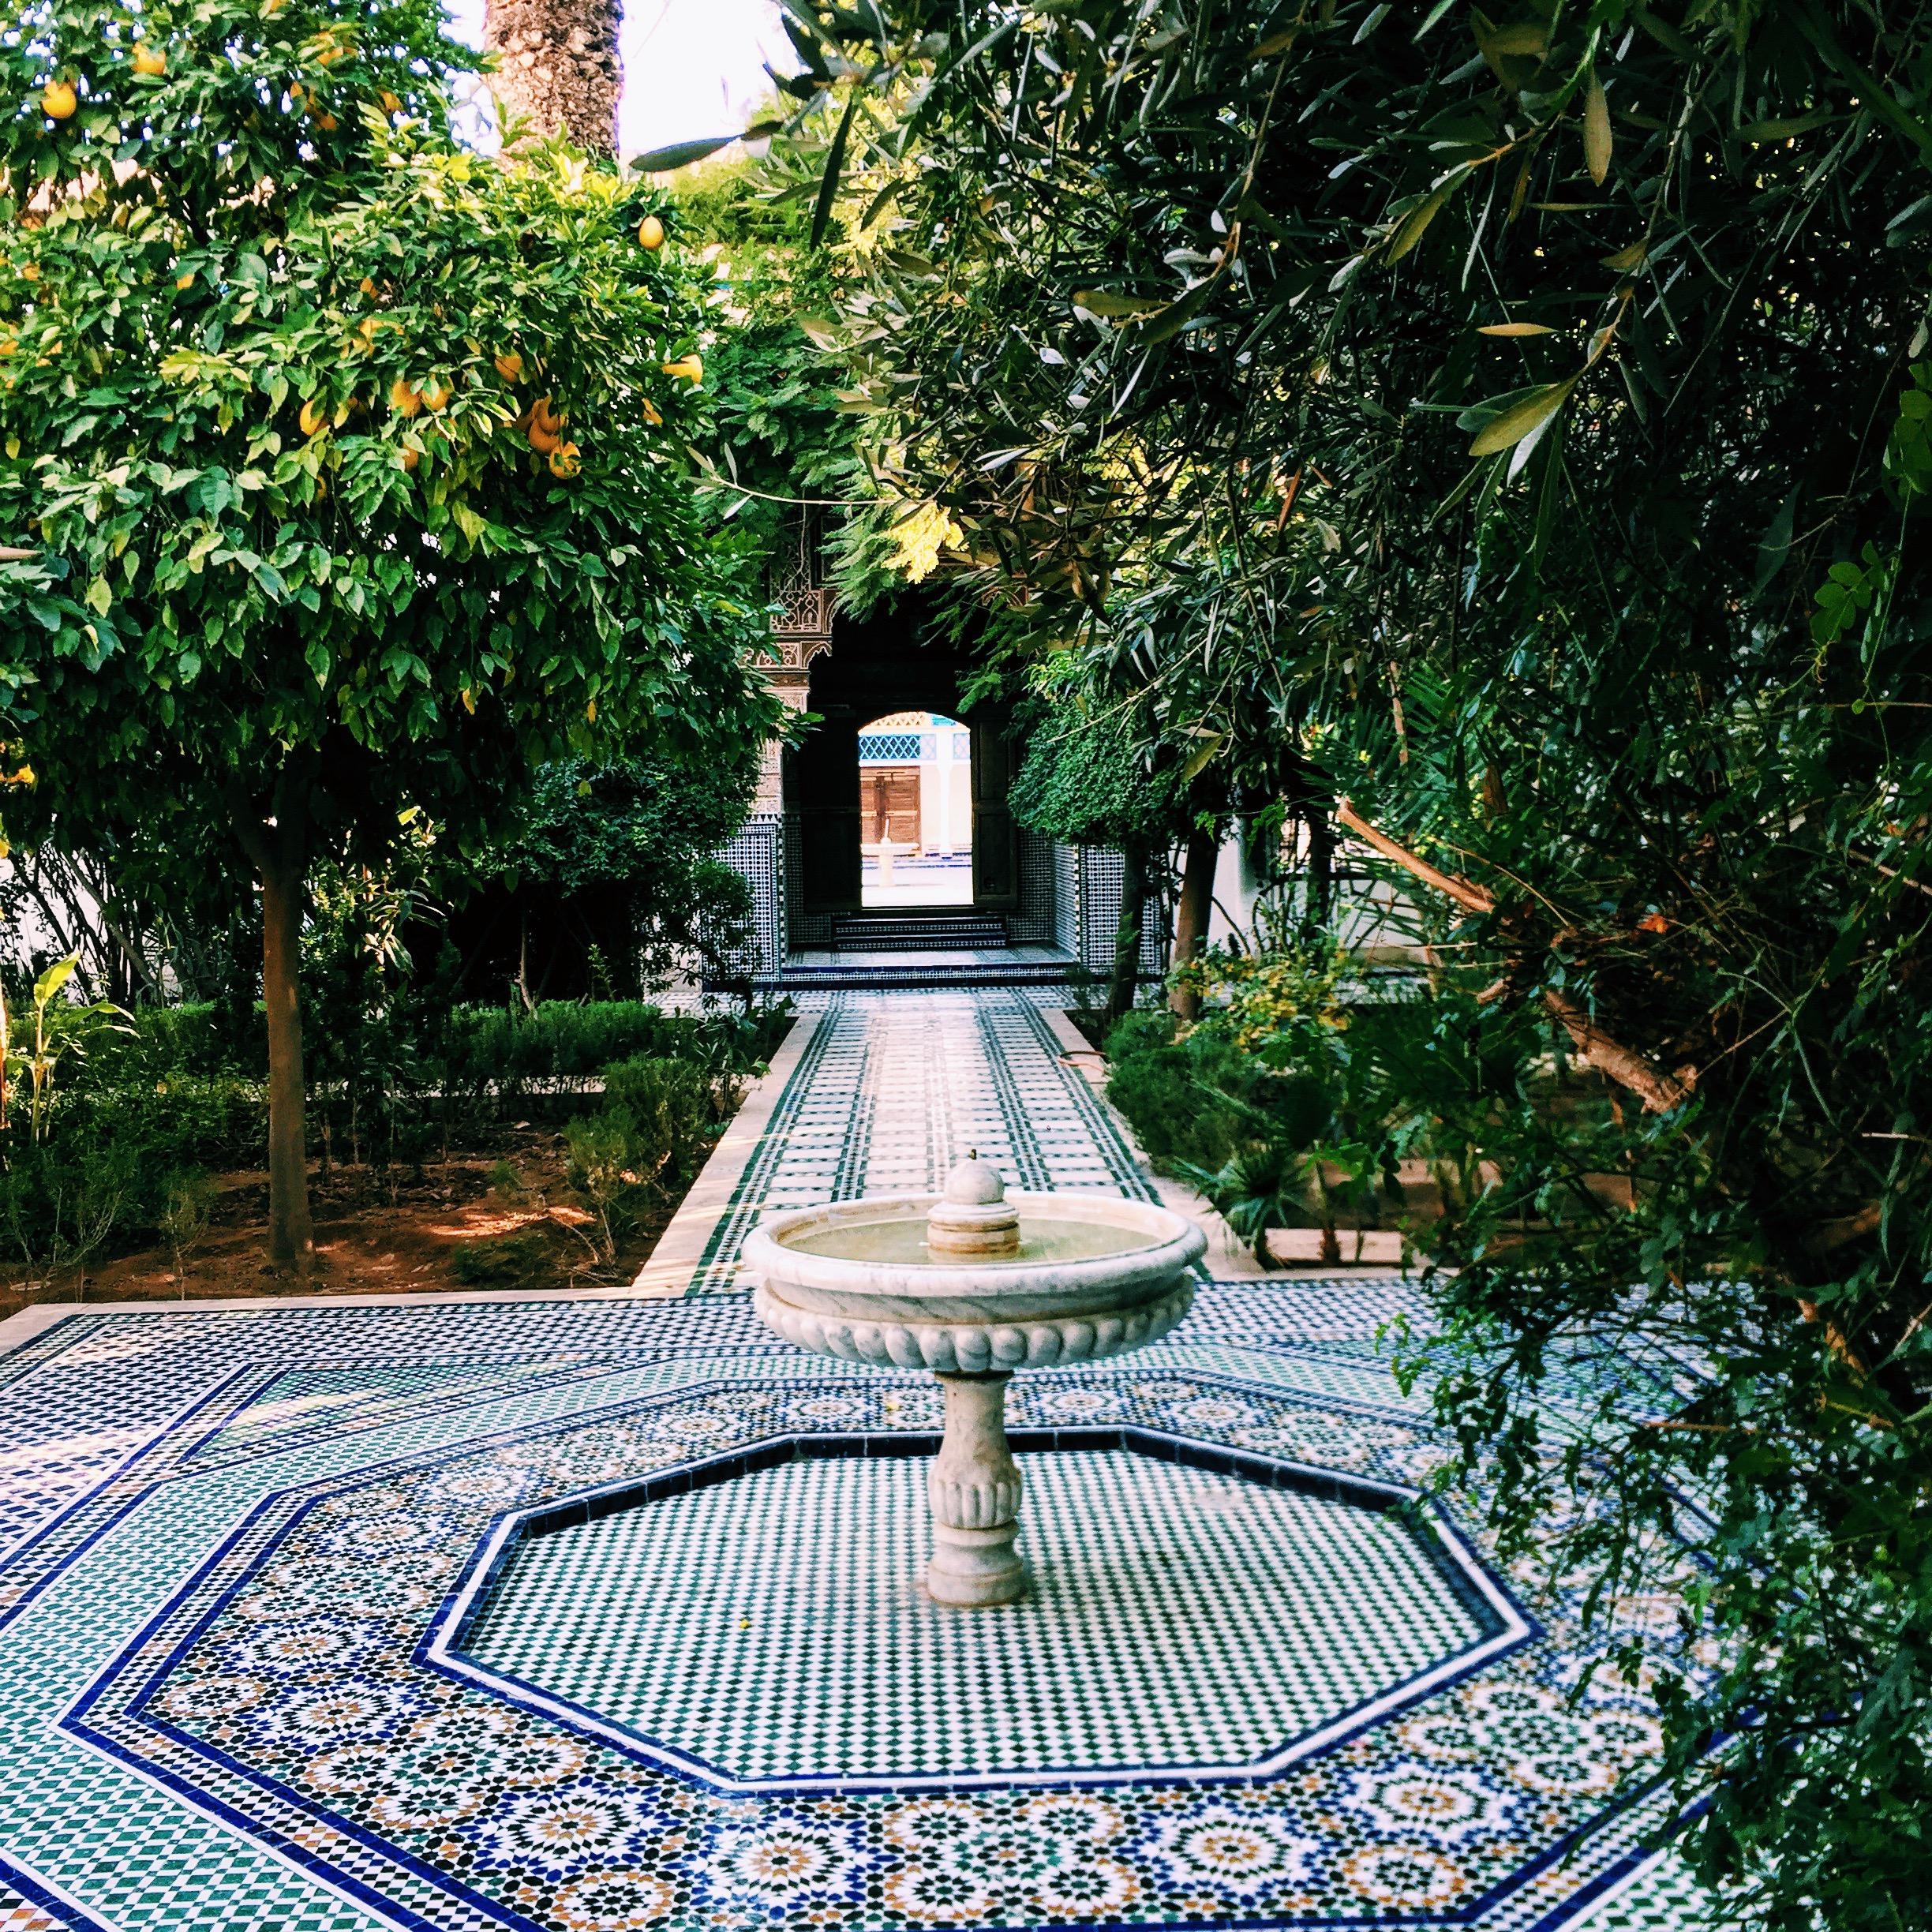 Interconnected courtyards and colorful tiles framing fountains are a trademark of Moroccan palaces, here at the Bahia Palace.